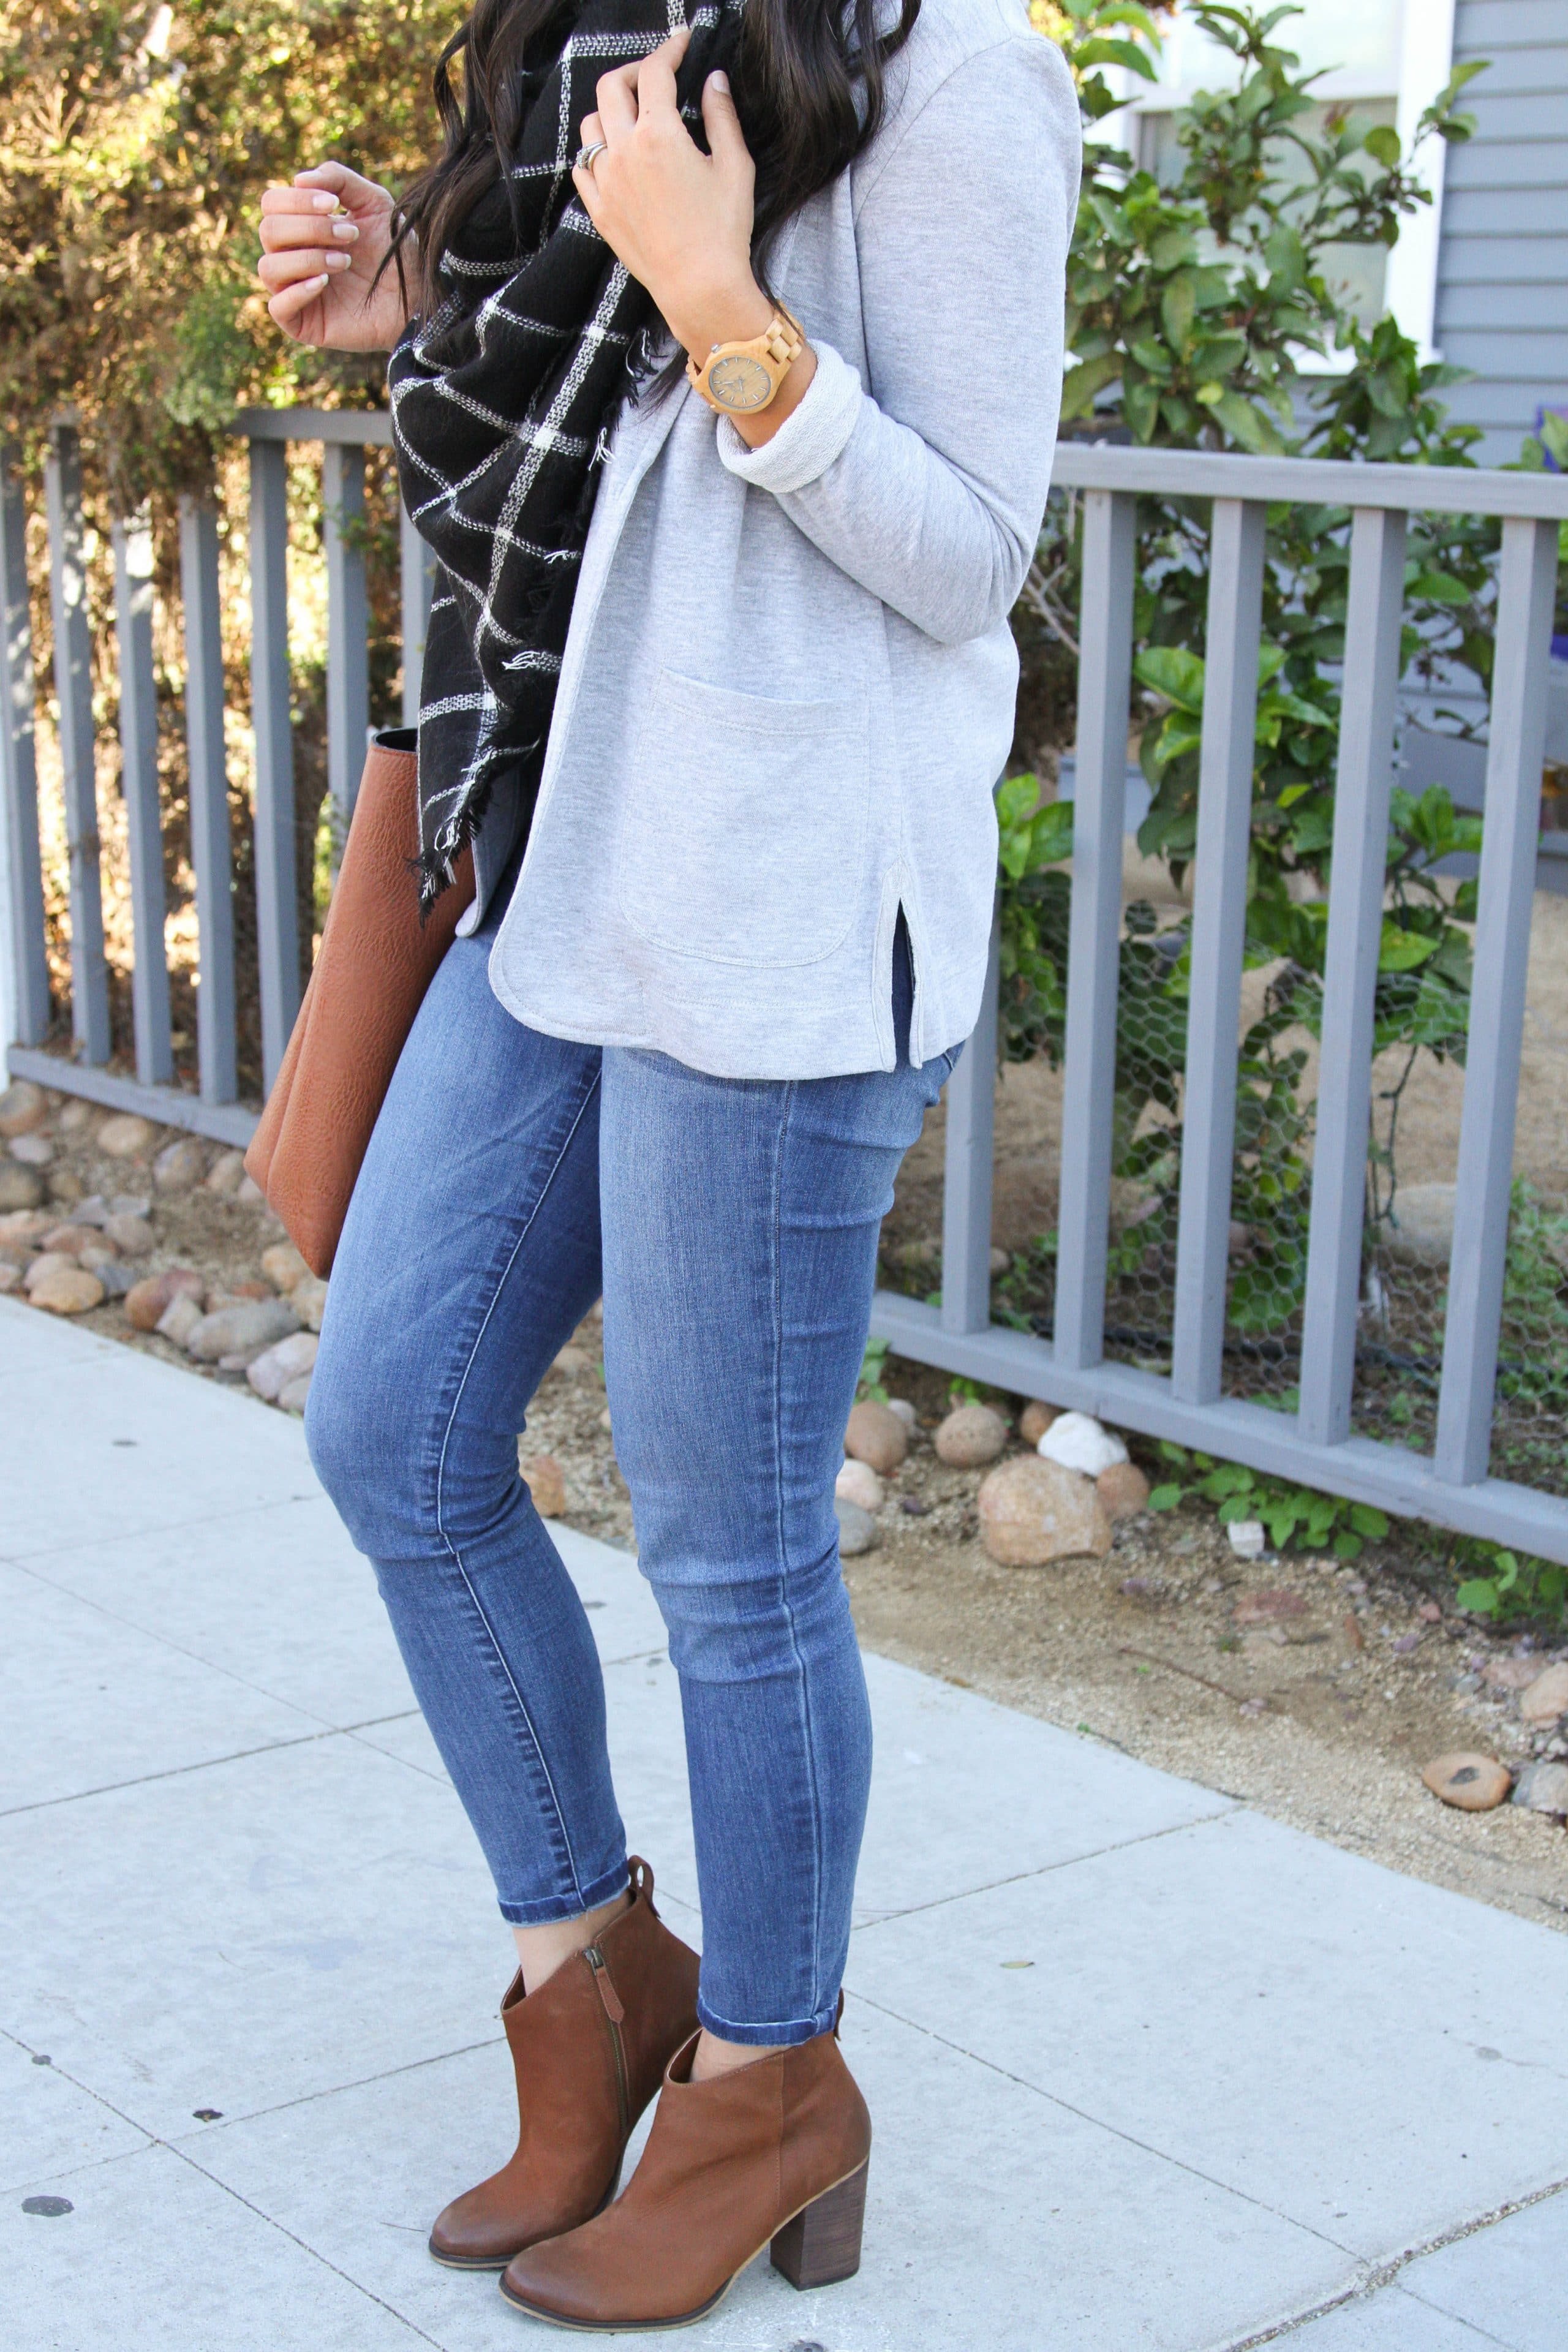 Gray Blazer + Blanket Scarf + Skinnies + Heeled Booties